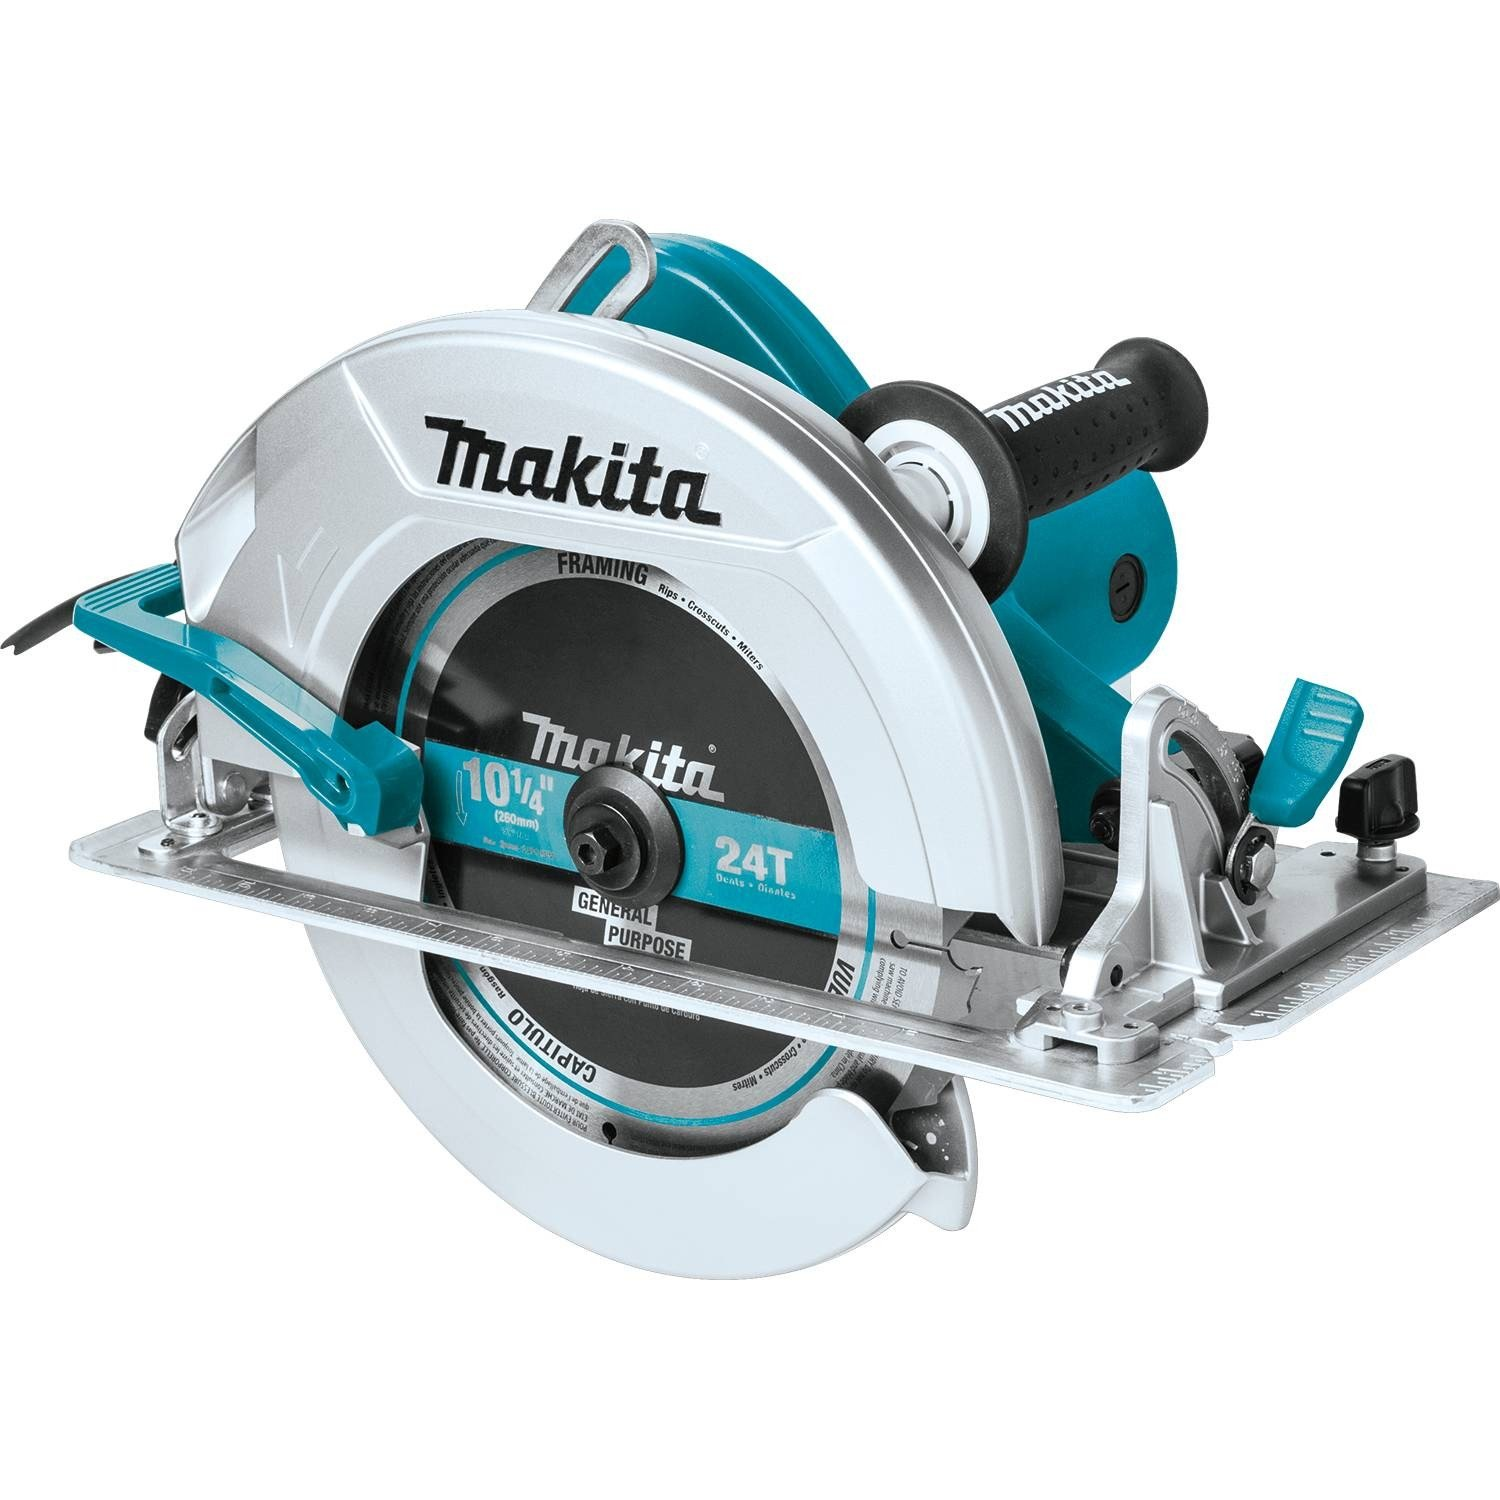 Electric circular saw: price, specifications